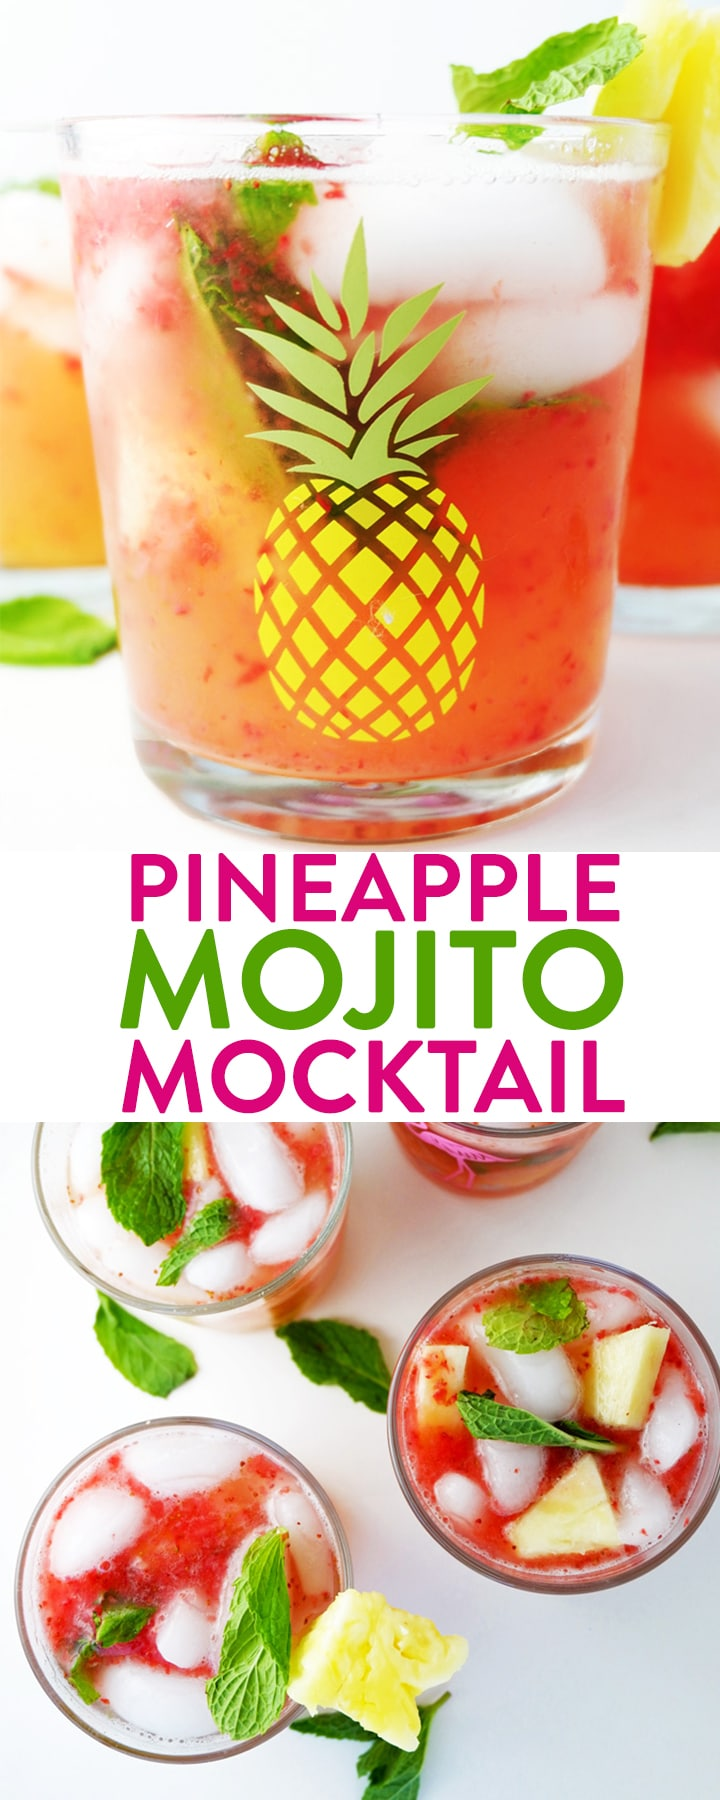 This pineapple mojito mocktail topped with a strawberry slush is a delicious virgin cocktail recipe that uses sparkling water, pineapple juice, mint, and fruit. With no refined sugar added this is a great kids mocktail and party drink!